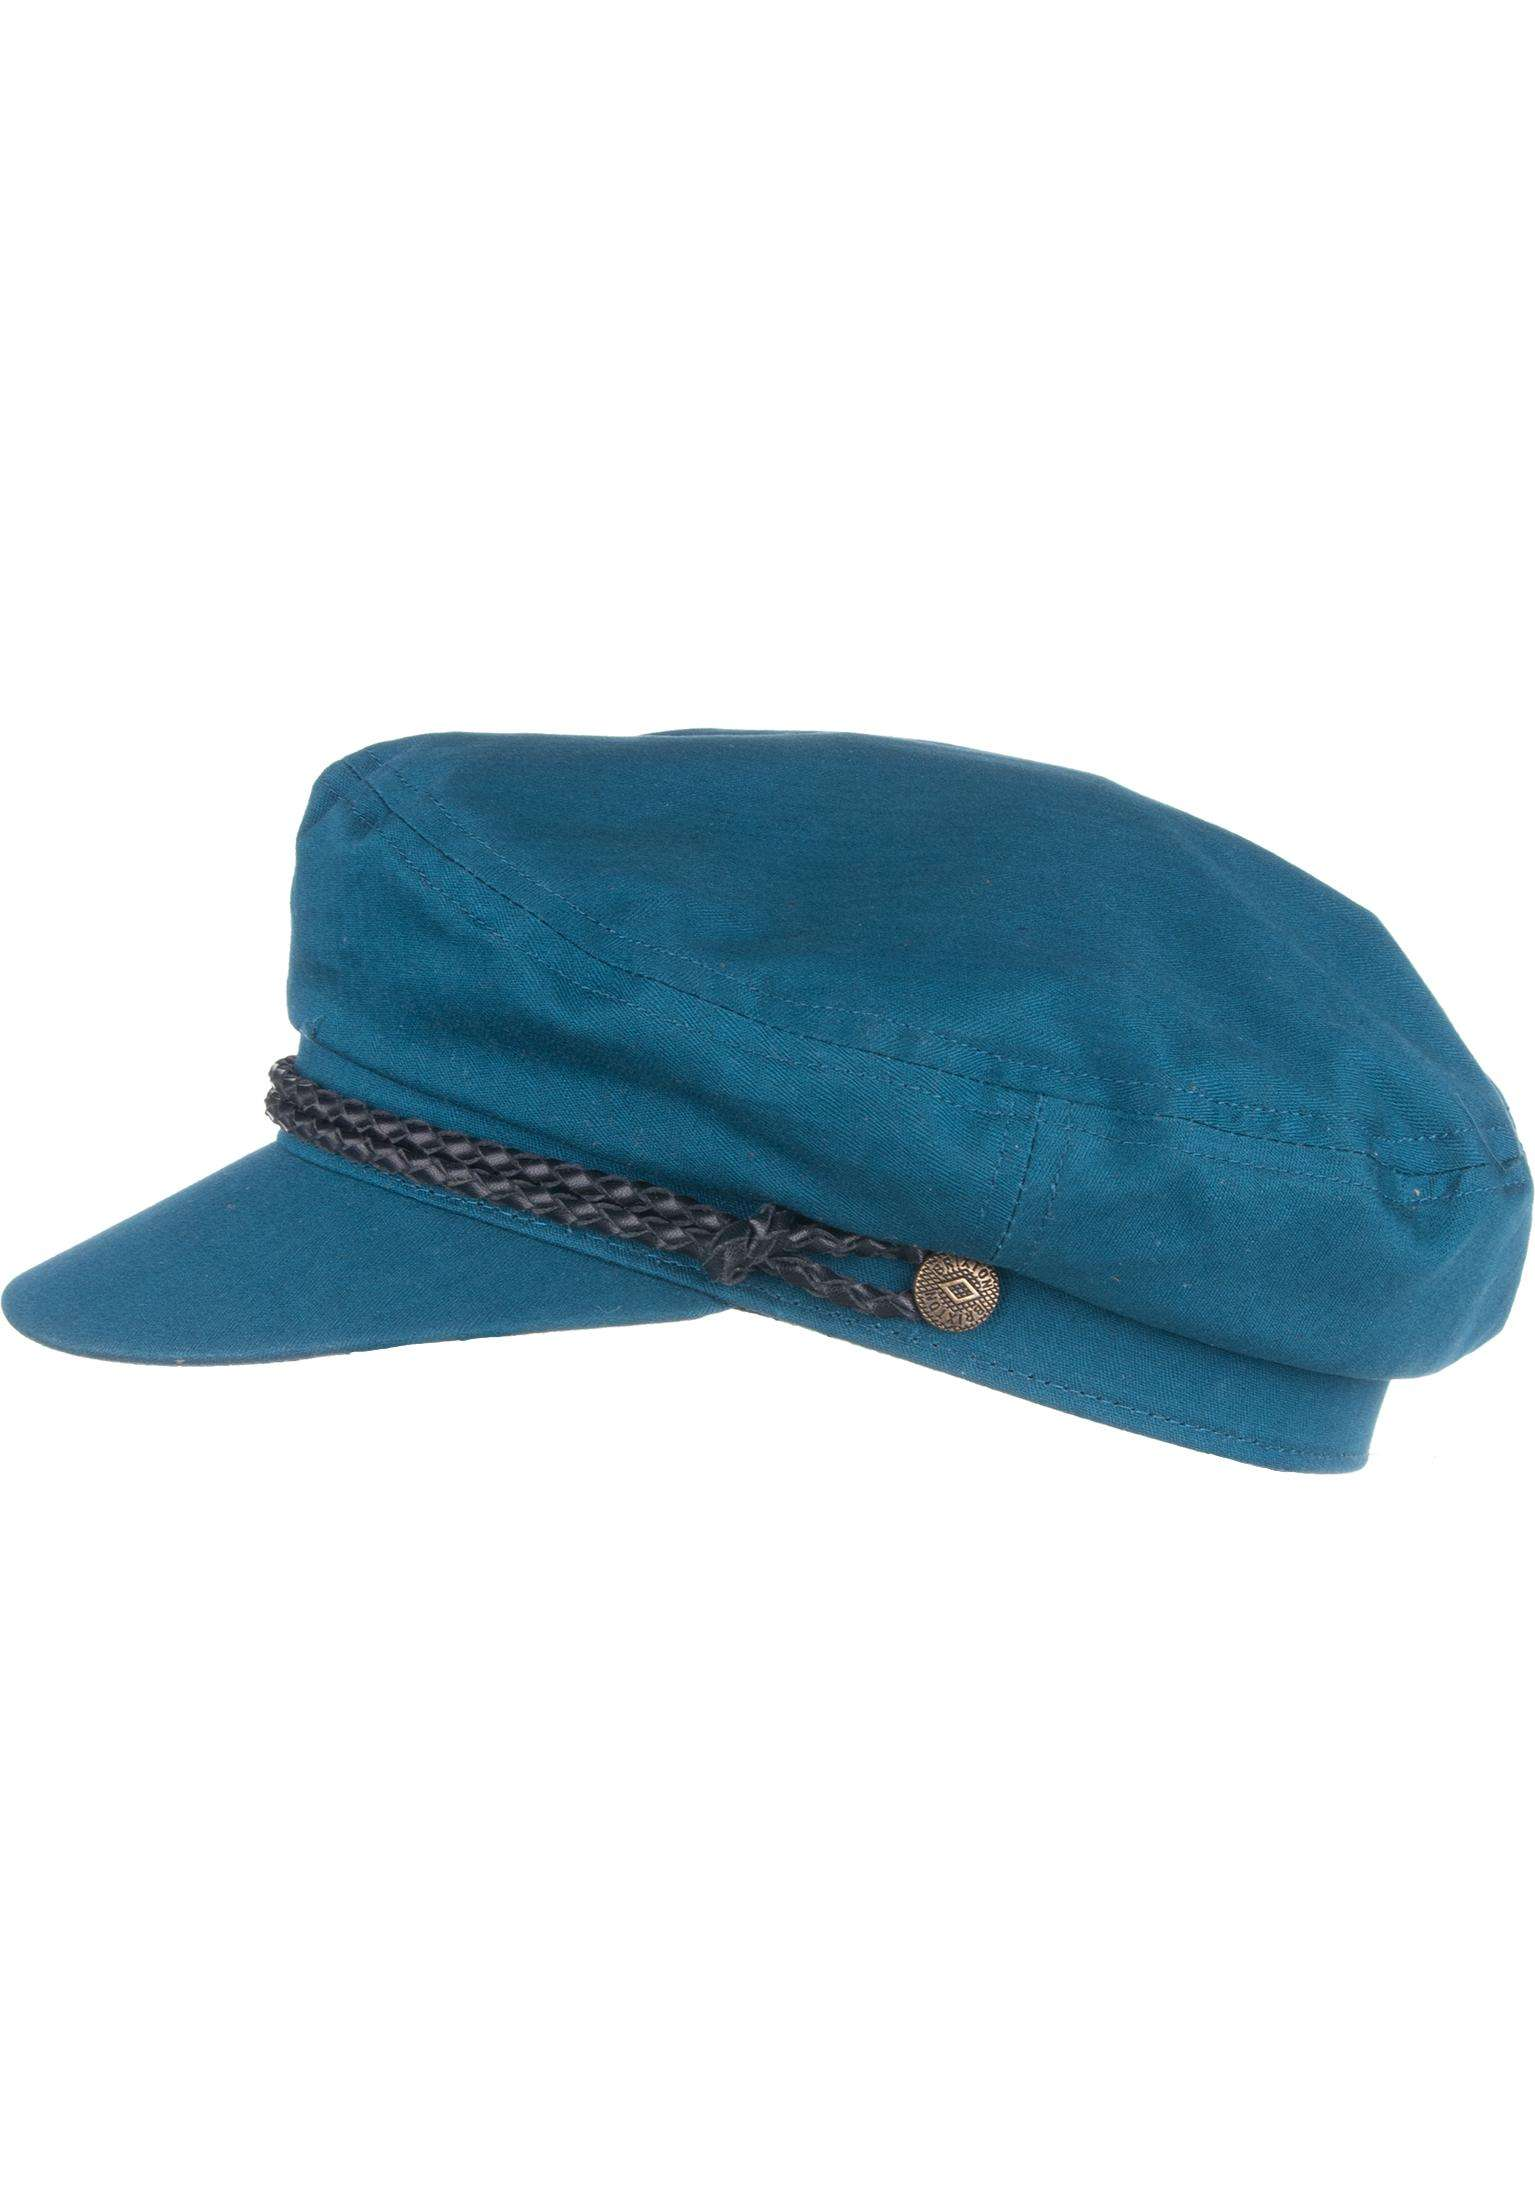 7c88eb1d683 Ashland Cap Brixton Hats in teal for Women